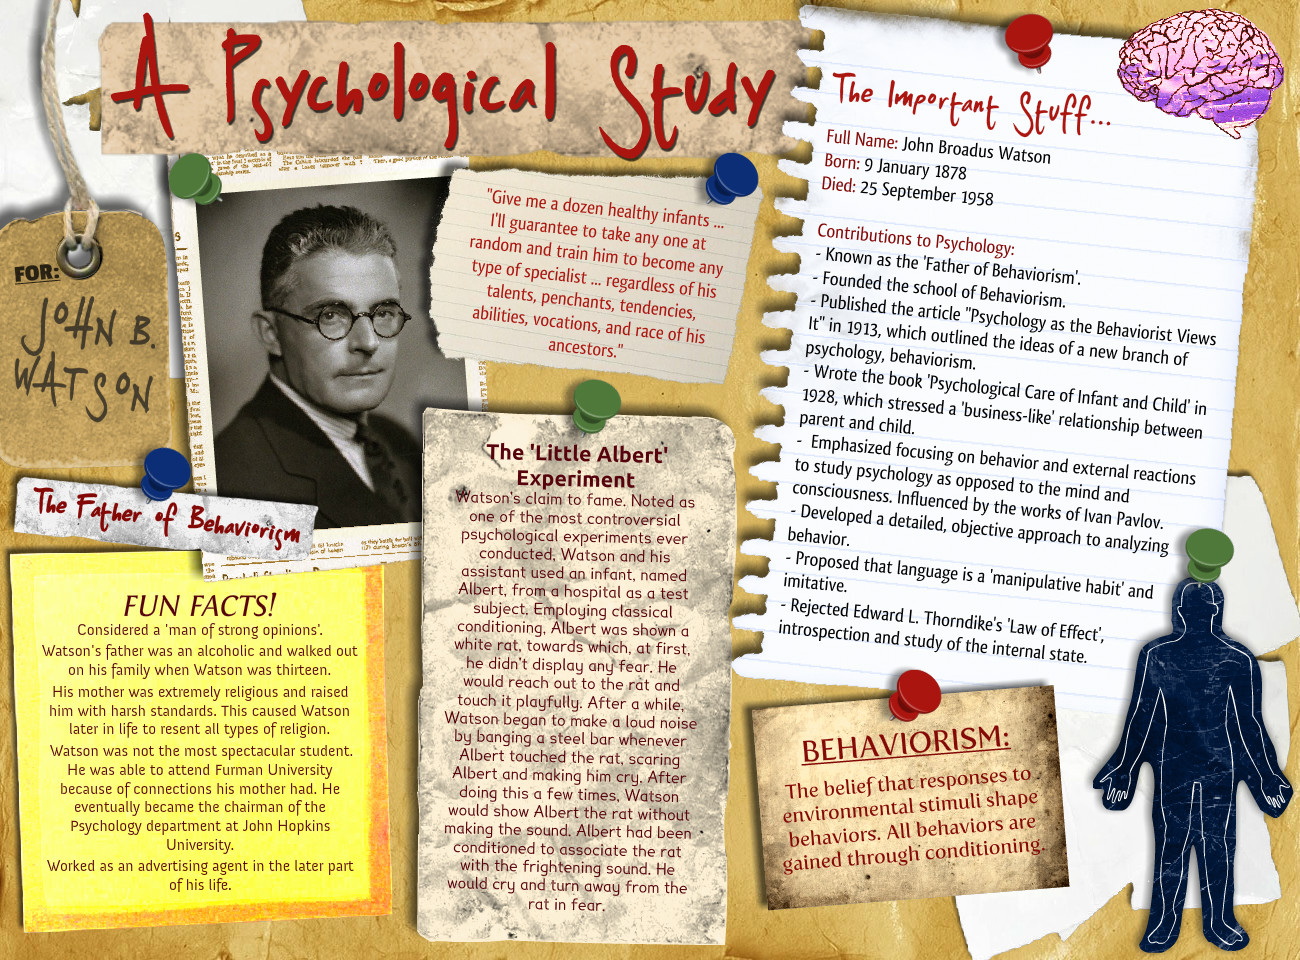 perspectives of john b watson b f John b watson and b f skinner were the principal contributors to the behavioral perspective true or false.